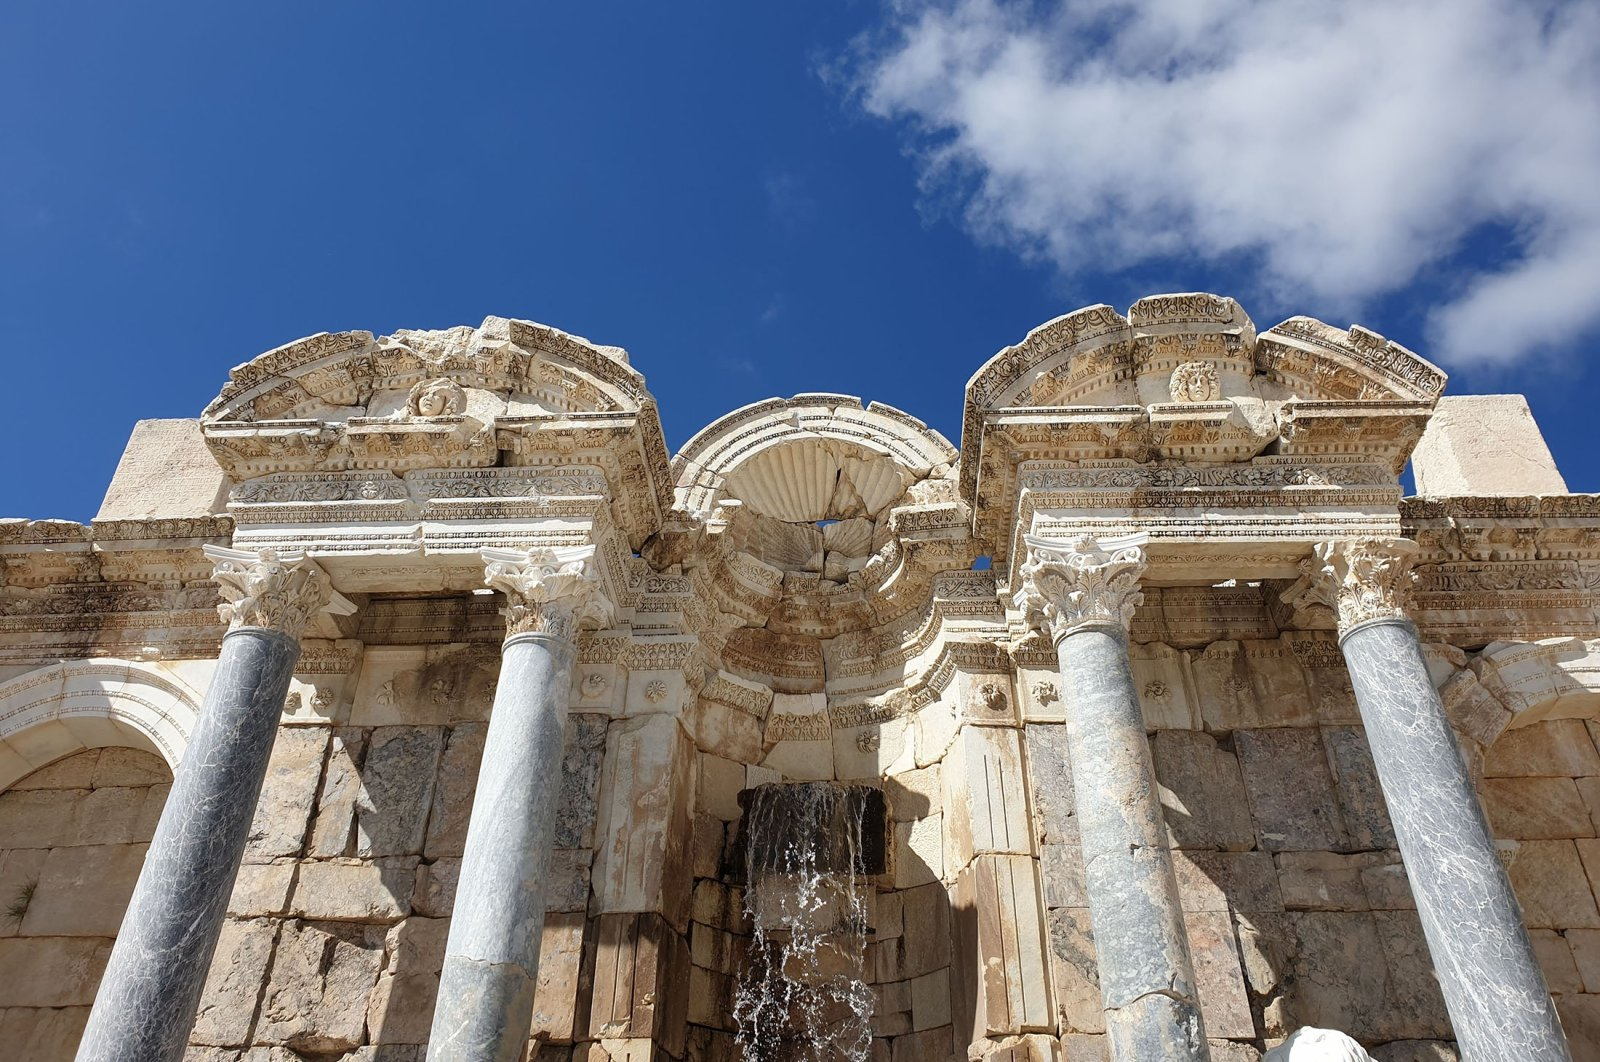 The stunning Antonine Fountain in Sagalassos. (Photo by Argun Konuk)